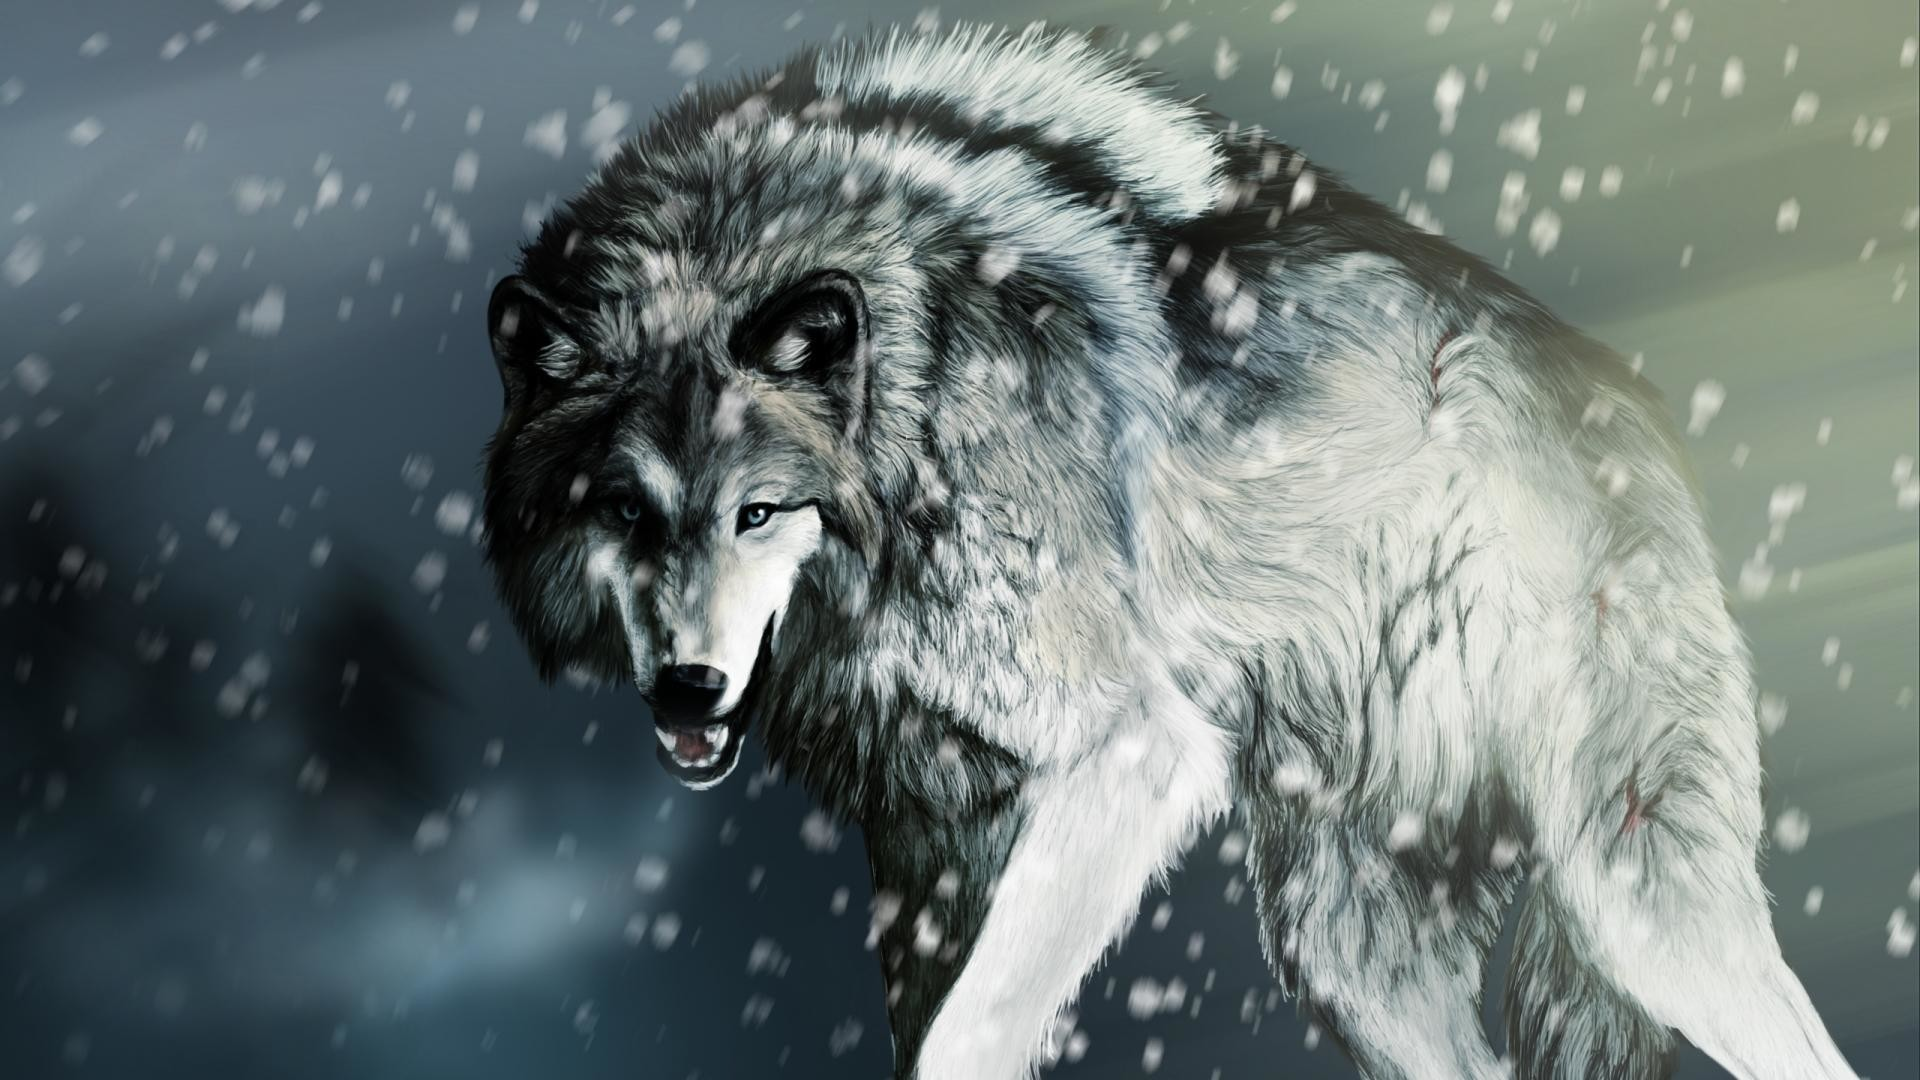 Wallpapers For > Cool Wolf Wallpaper Hd